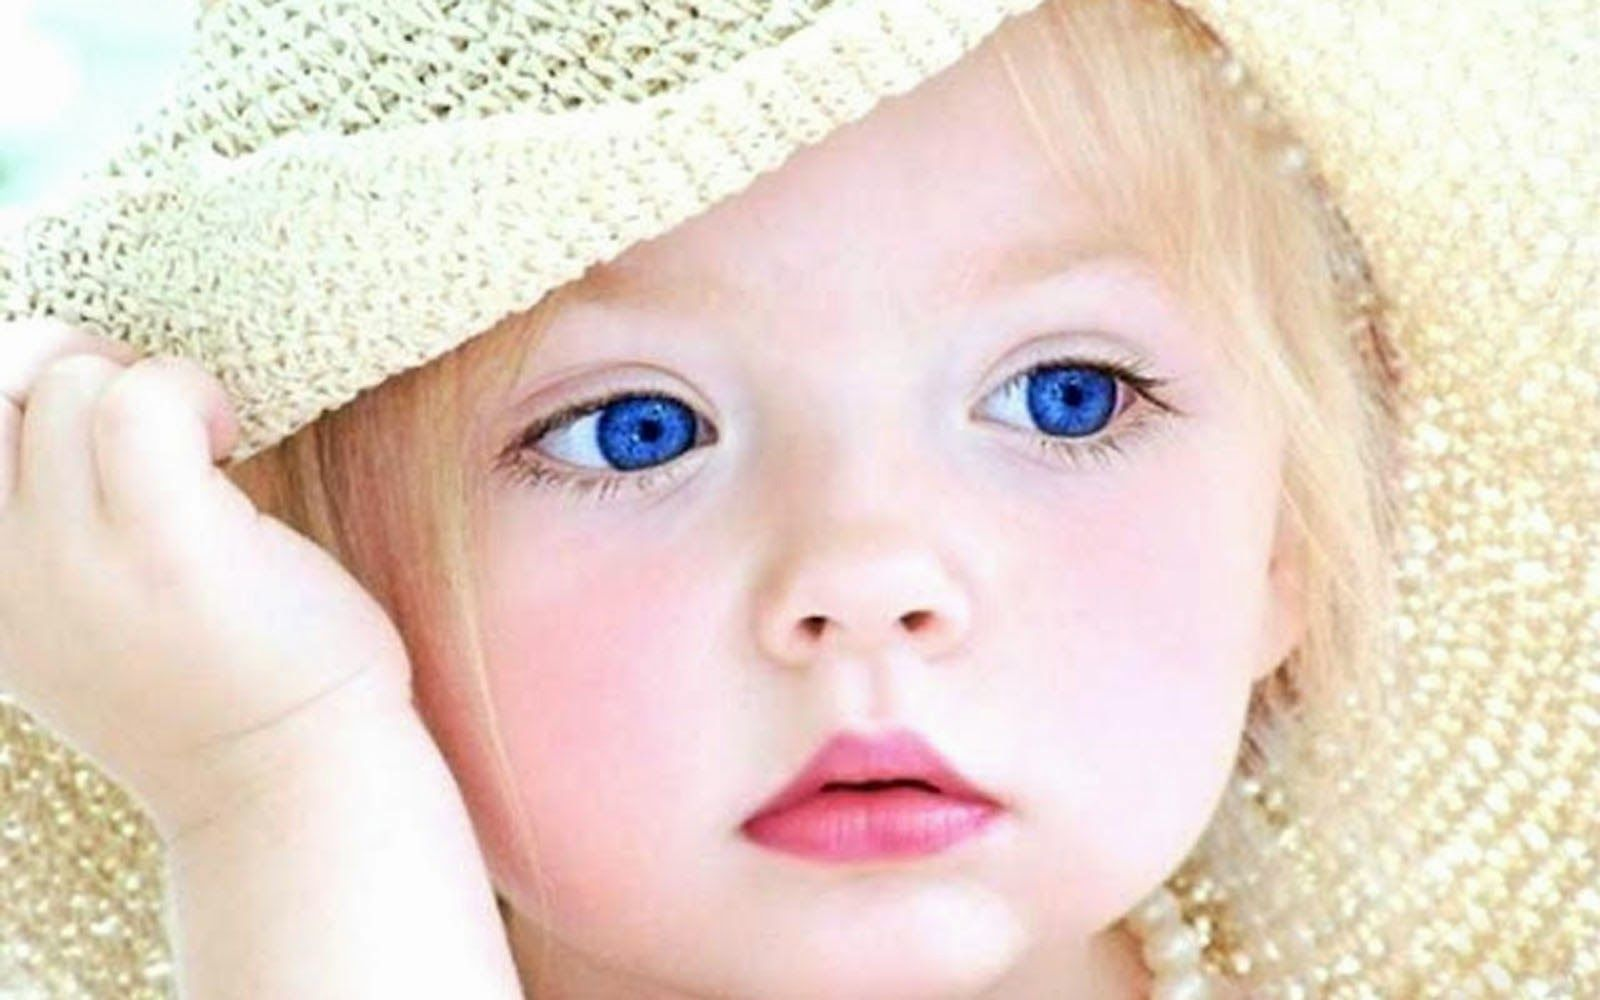 Cute baby wallpapers hd free beautiful desktop wallpapers 2014 cute baby wallpapers hd free beautiful desktop wallpapers 2014 voltagebd Image collections